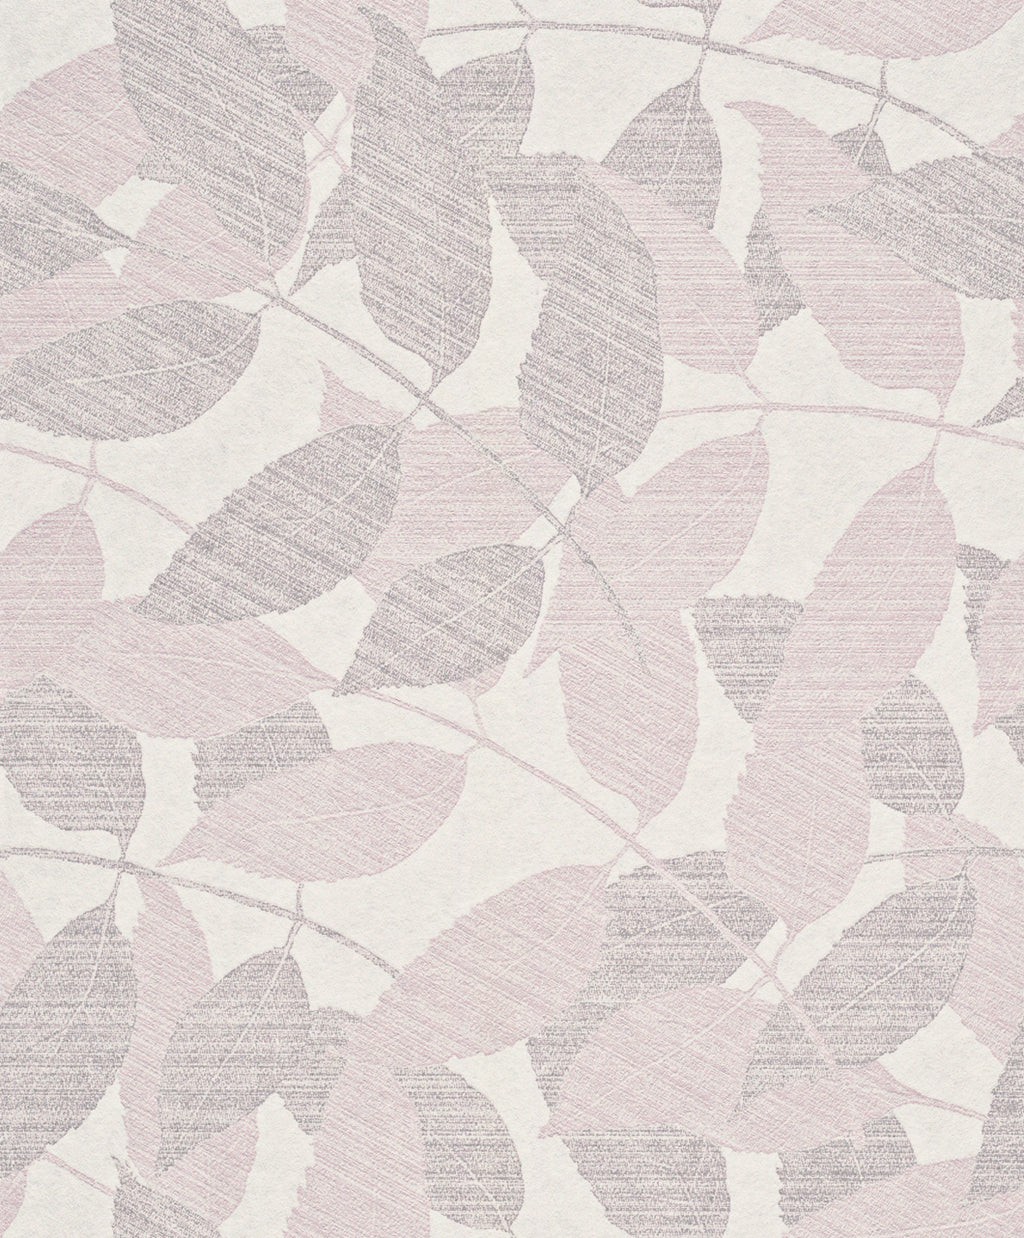 Transitional Metallic Pink Overleaf Wallpaper R4011